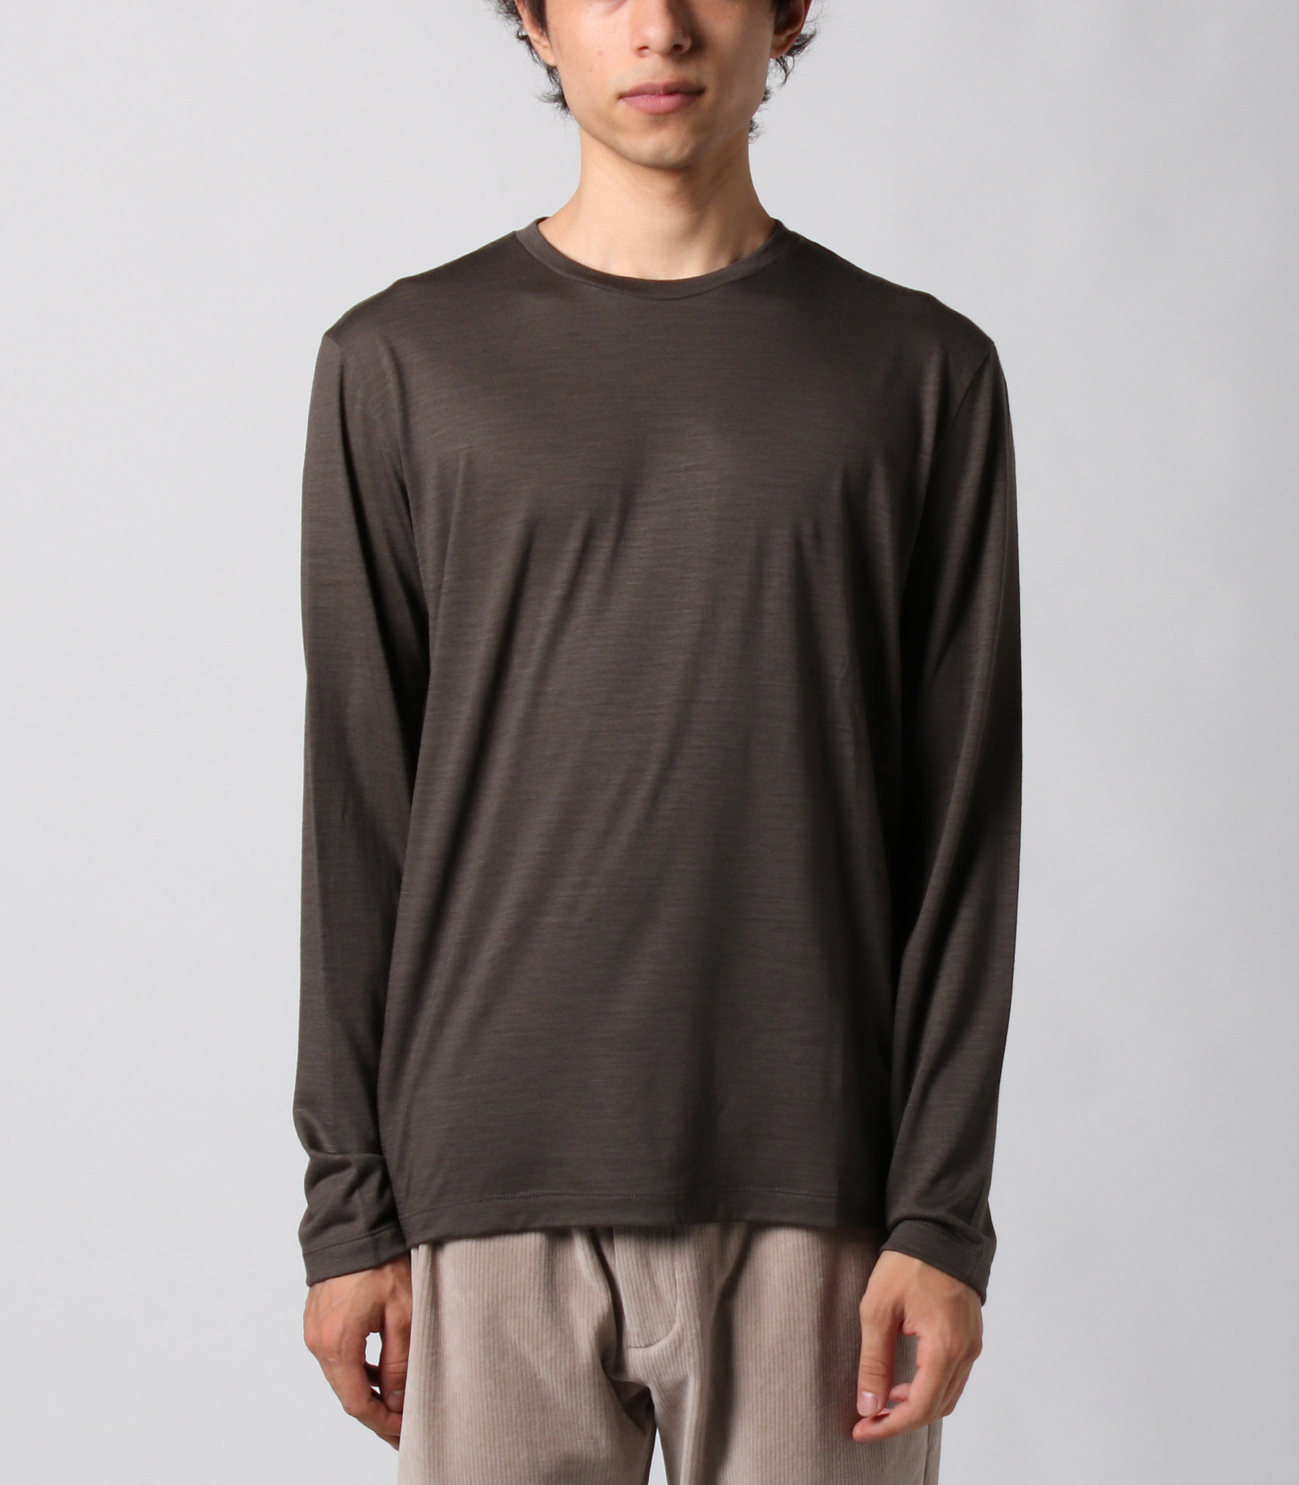 Washable silky dry jersey crewneck 詳細画像 brown 2